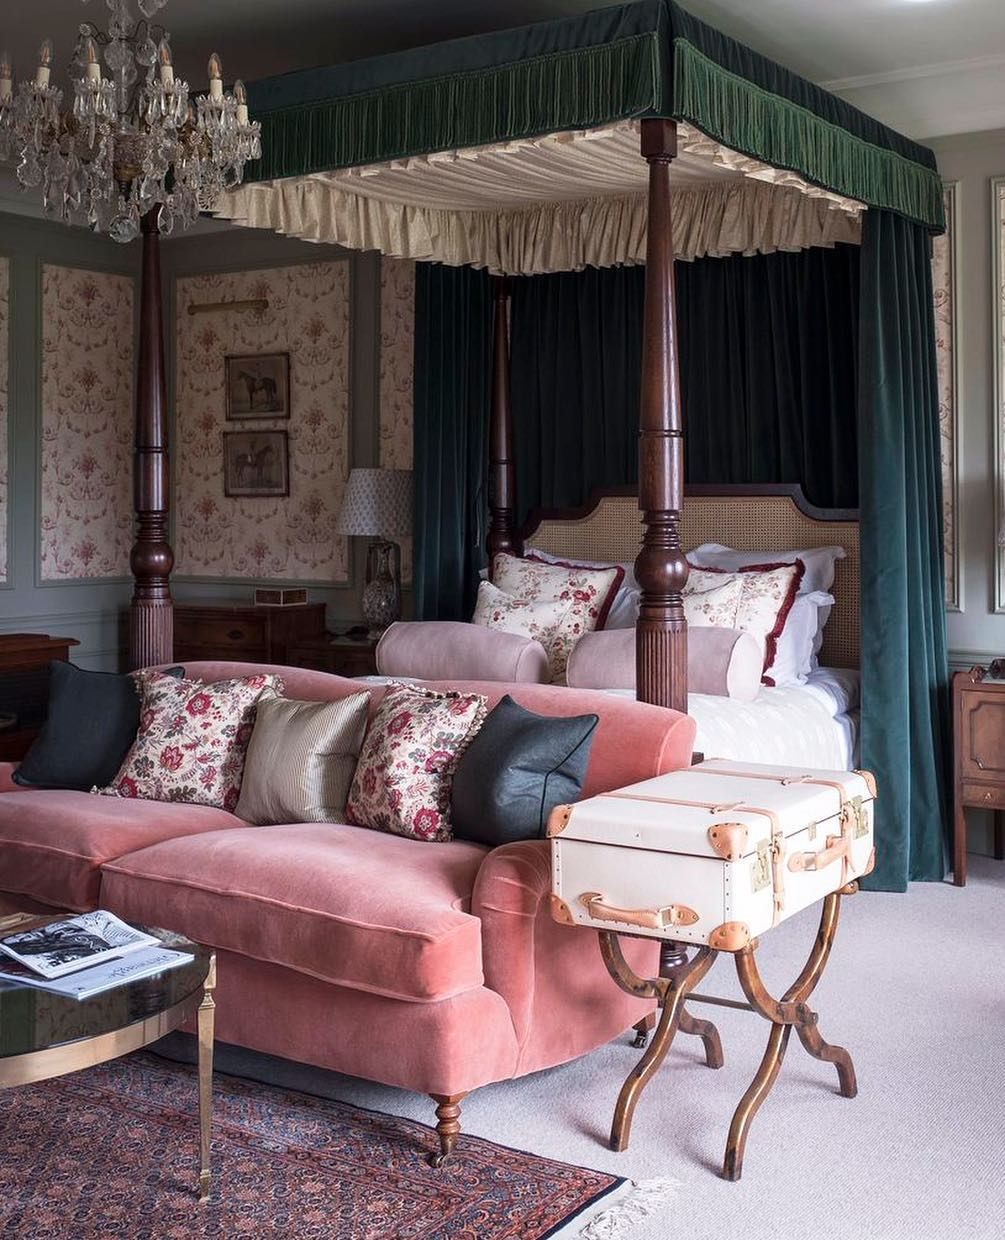 New The 10 Best Home Decor With Pictures The Royal Lochnagar Suite At Gleneagles Hotel Featuring A Be Country Bedroom Home Decor Eclectic Bedroom Design